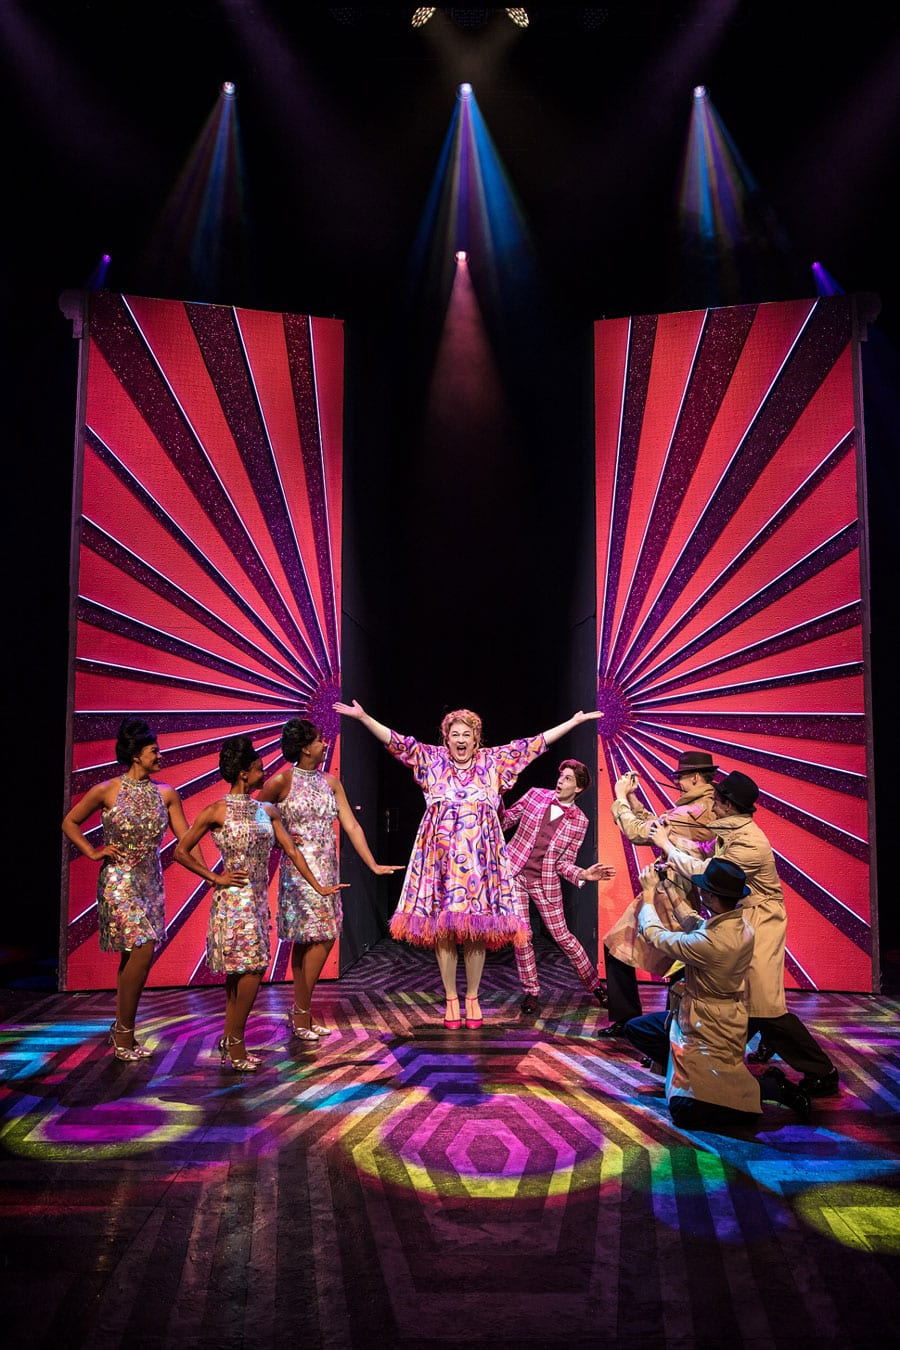 Hairspray musical UK tour tickets